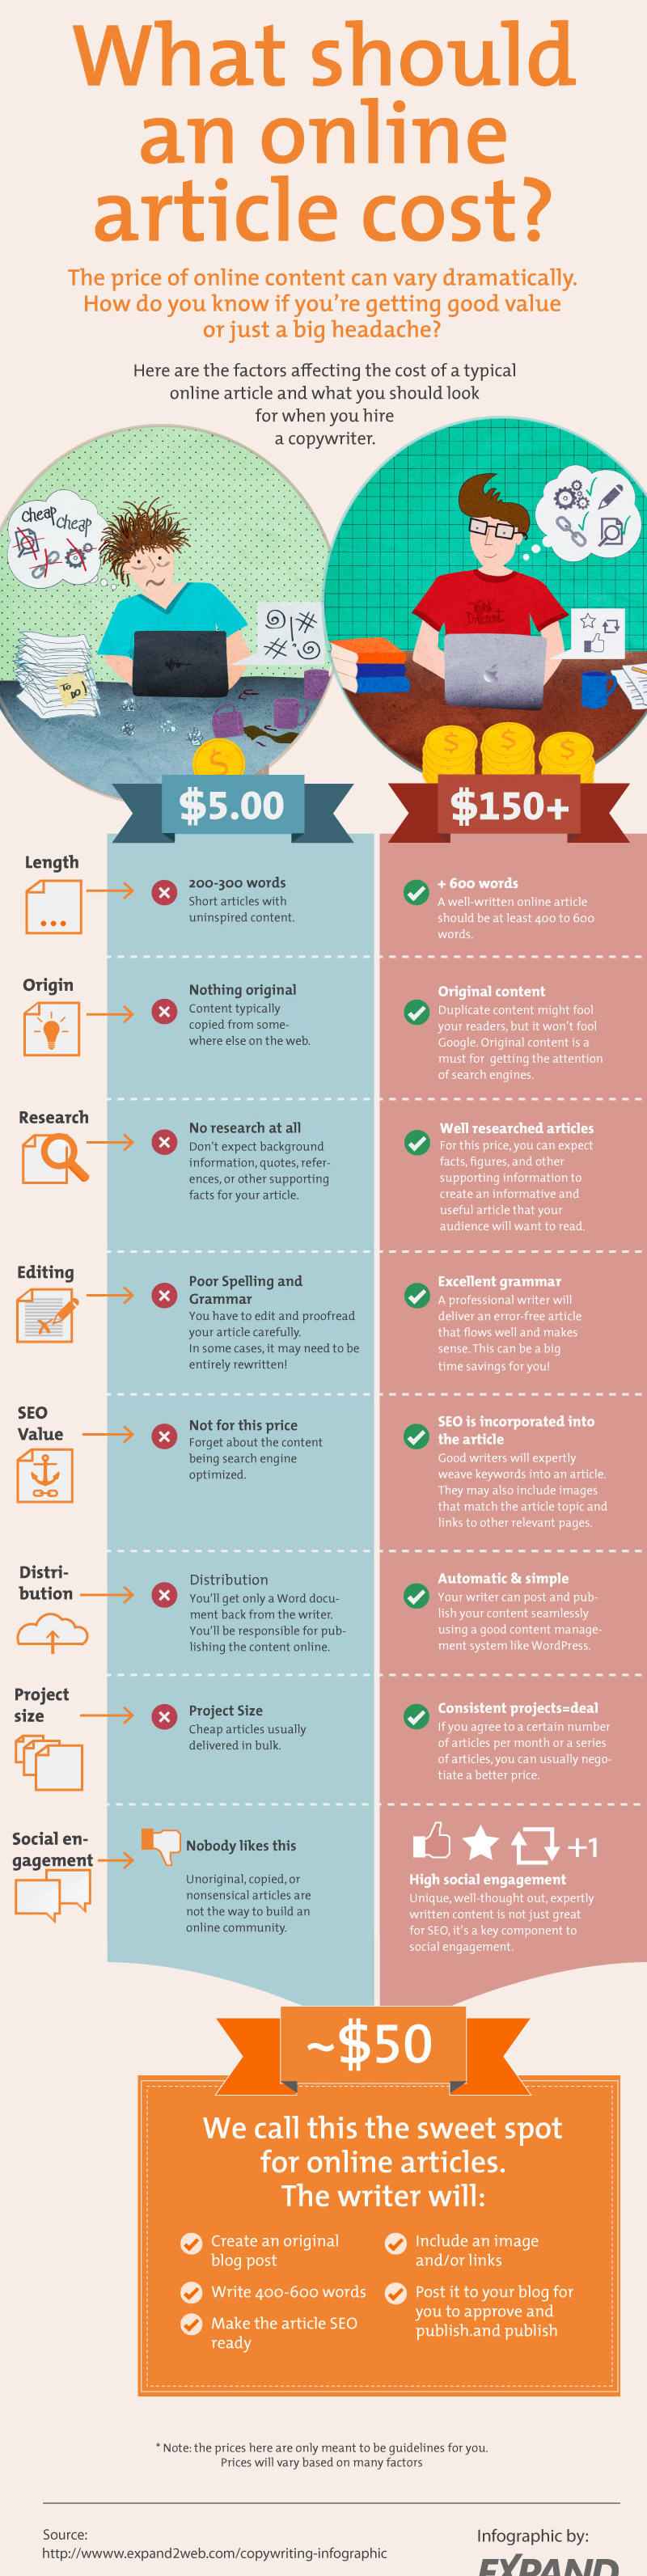 copywriting-infographic-expand2web